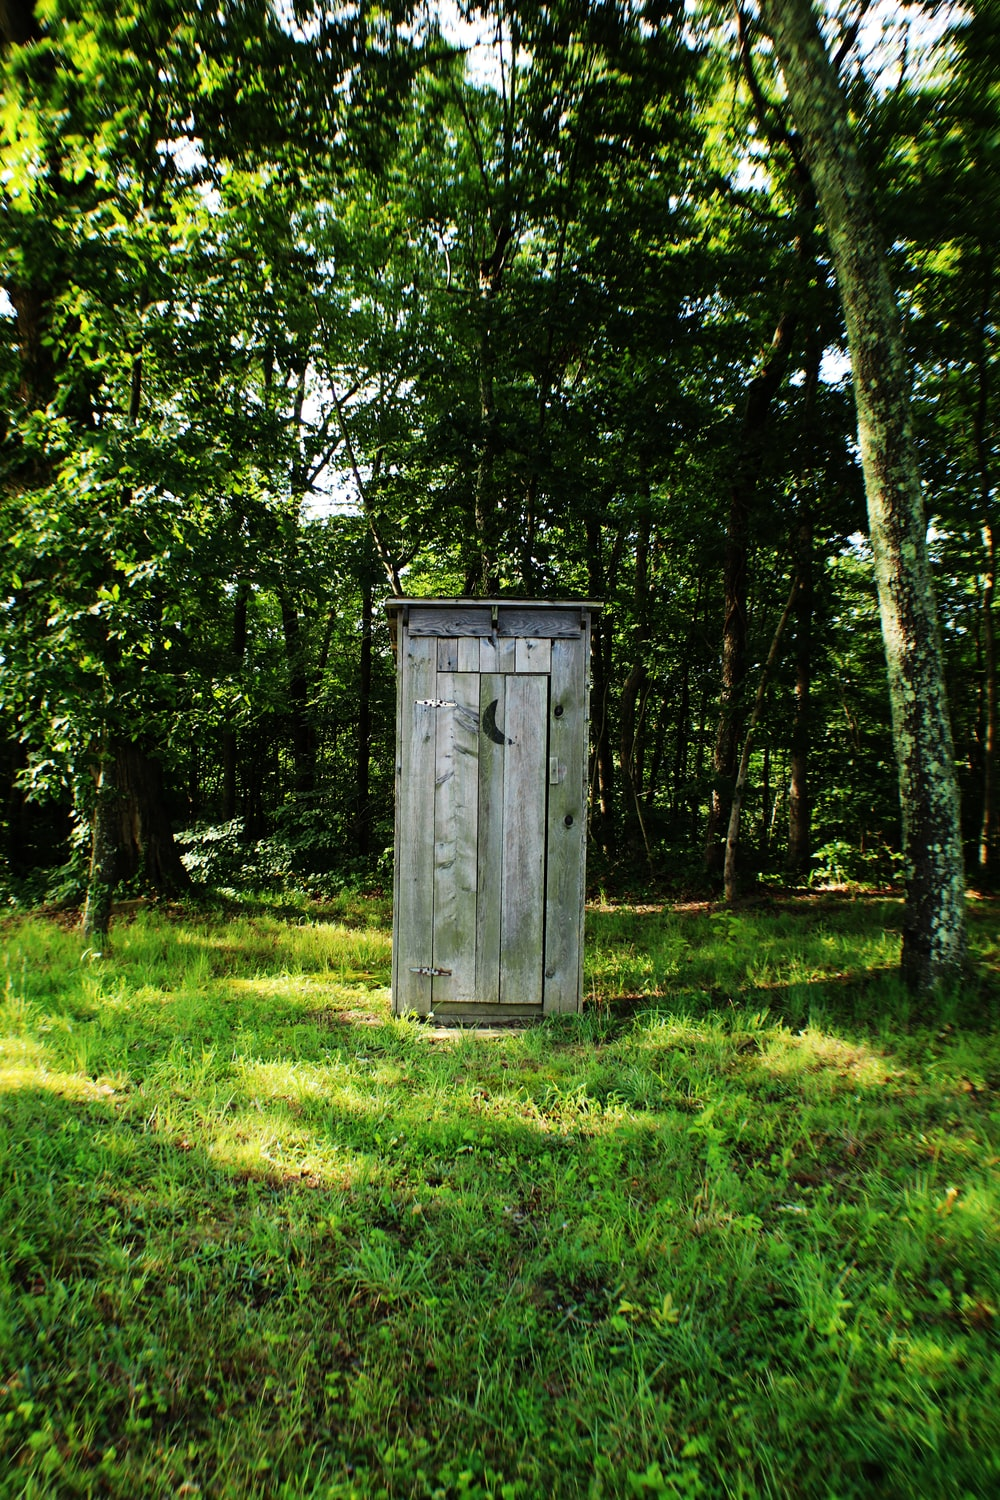 gray wooden outdoor portable bathroom